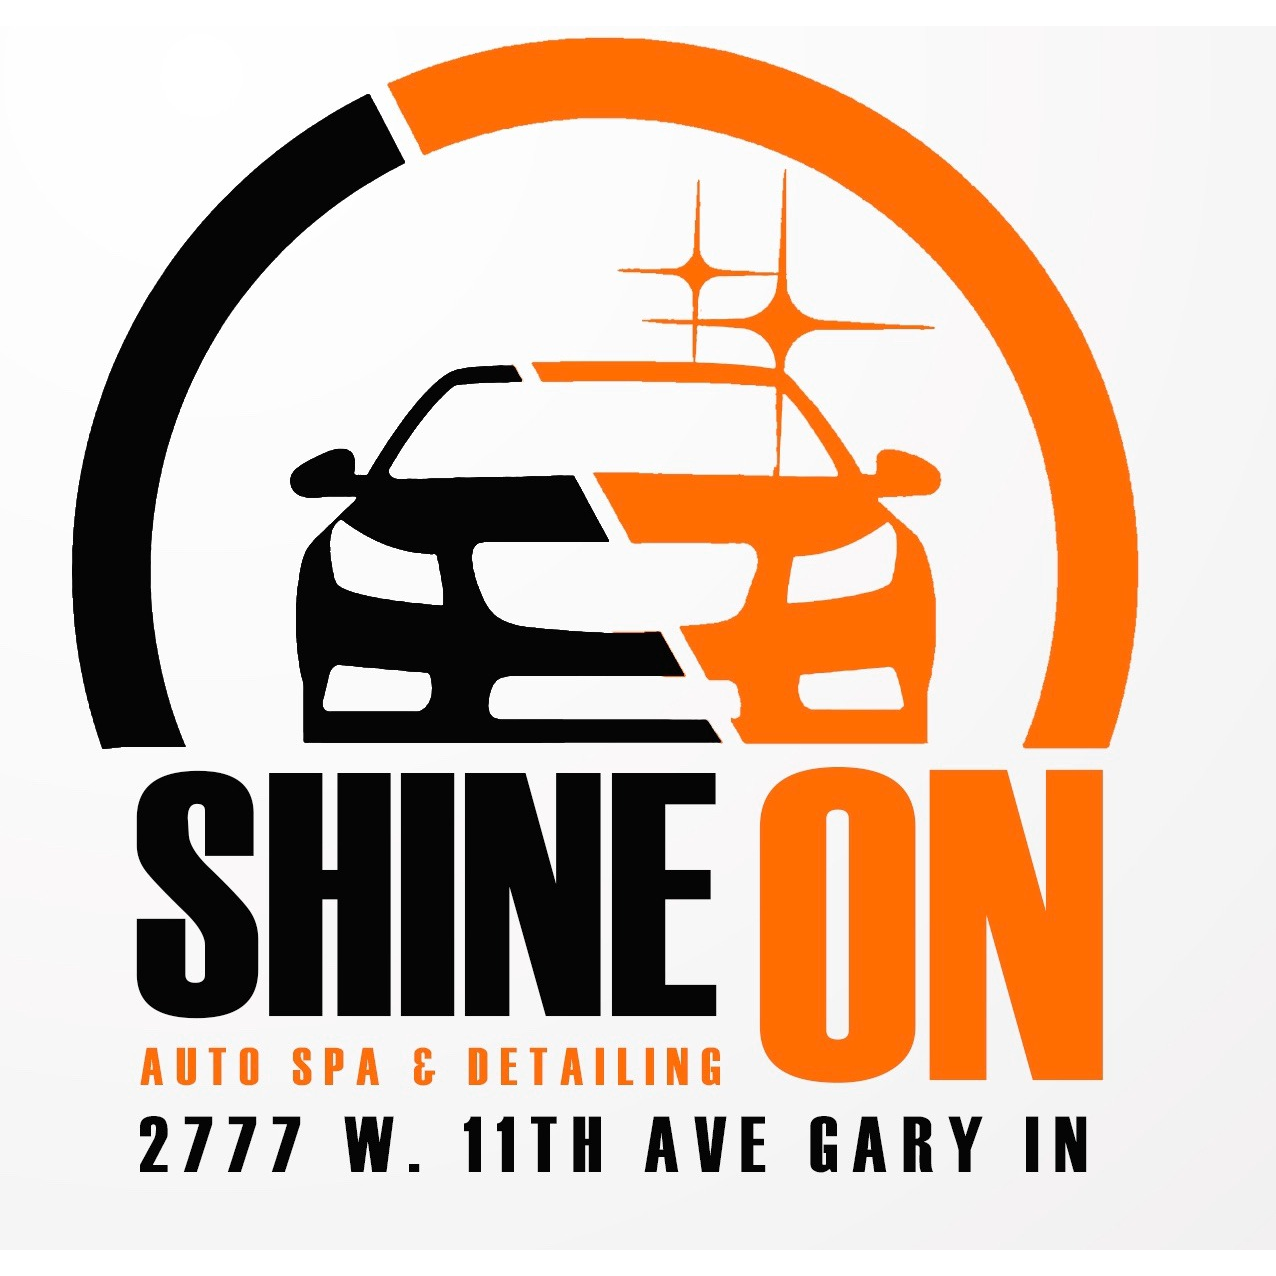 Shine On Auto Spa and Detailing Gary (219)487-5373